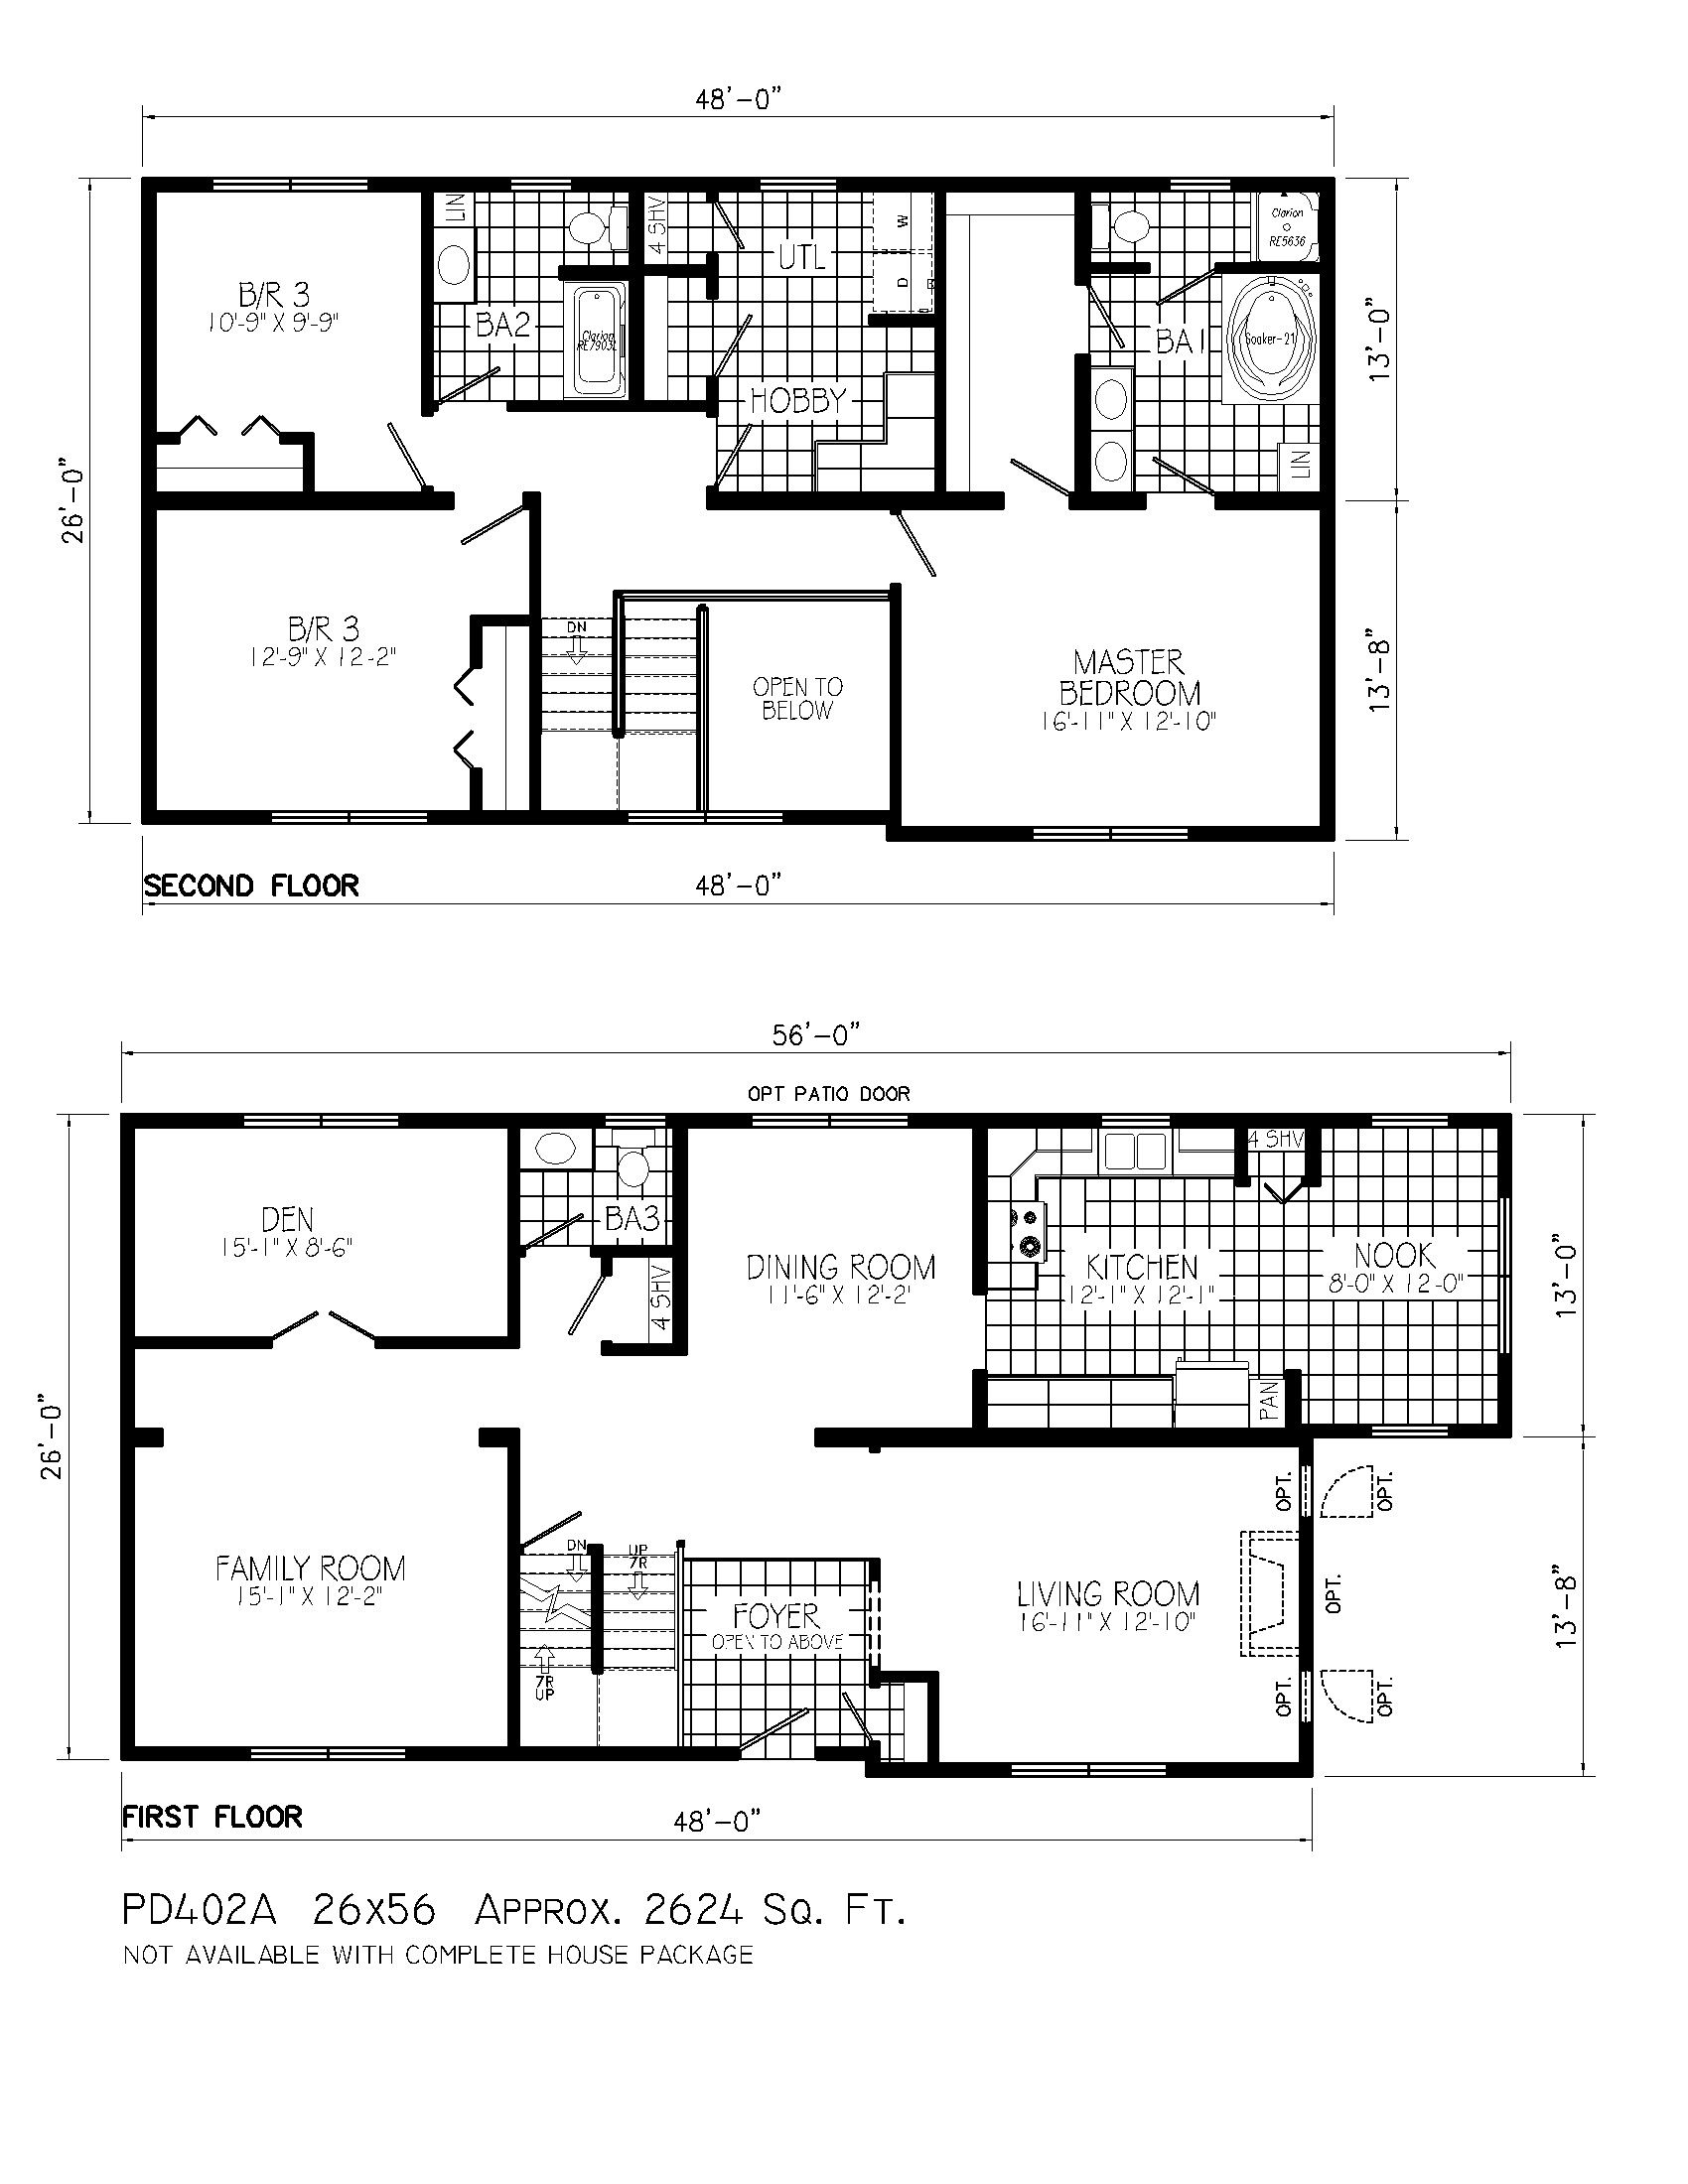 Small two story cabin floor plans with house under 1000 sq ft wallpaper modern home decor Home design and comfort